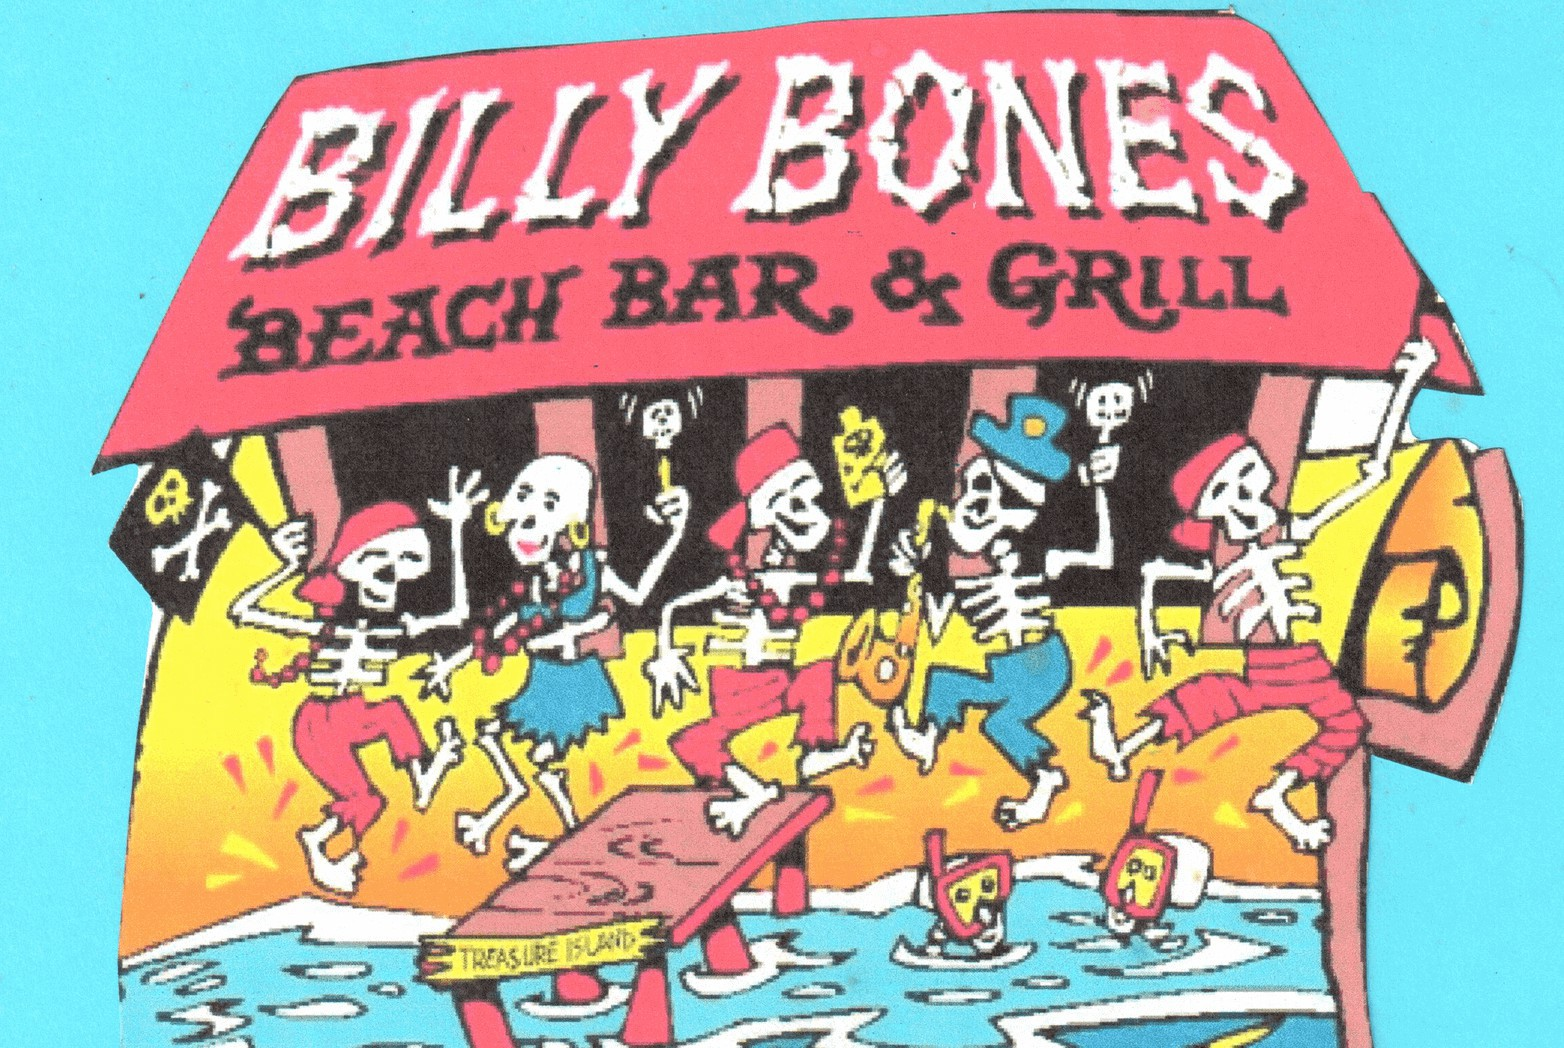 Billy Bones Beach Bar & Grill, Norman Islands, British Virgin Islands menu